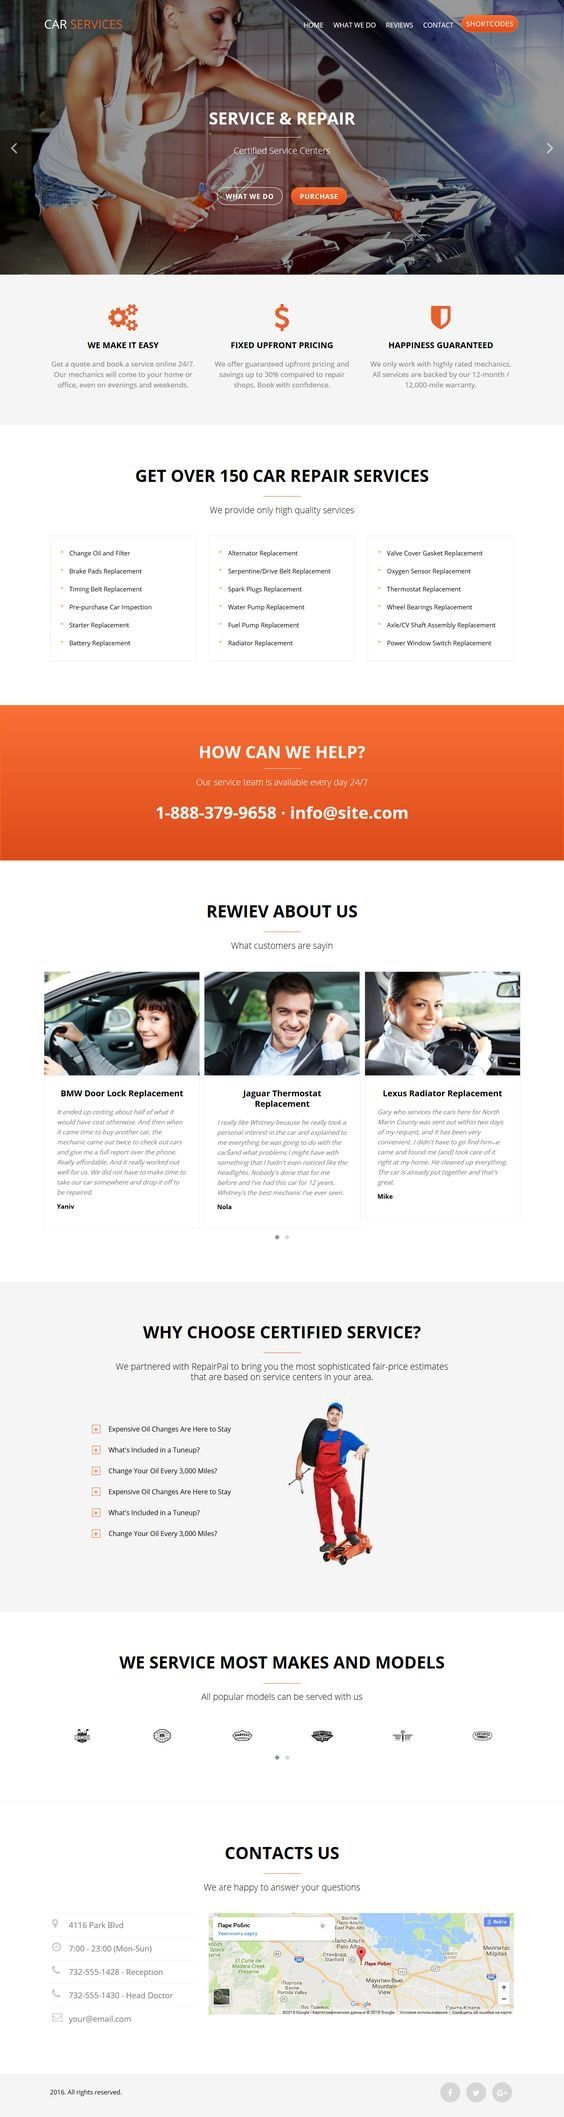 Car Service - Conversion Landing Page. Download: https://themeforest.net/item/car-services-responsive-landing-page/16544571?ref=skarin